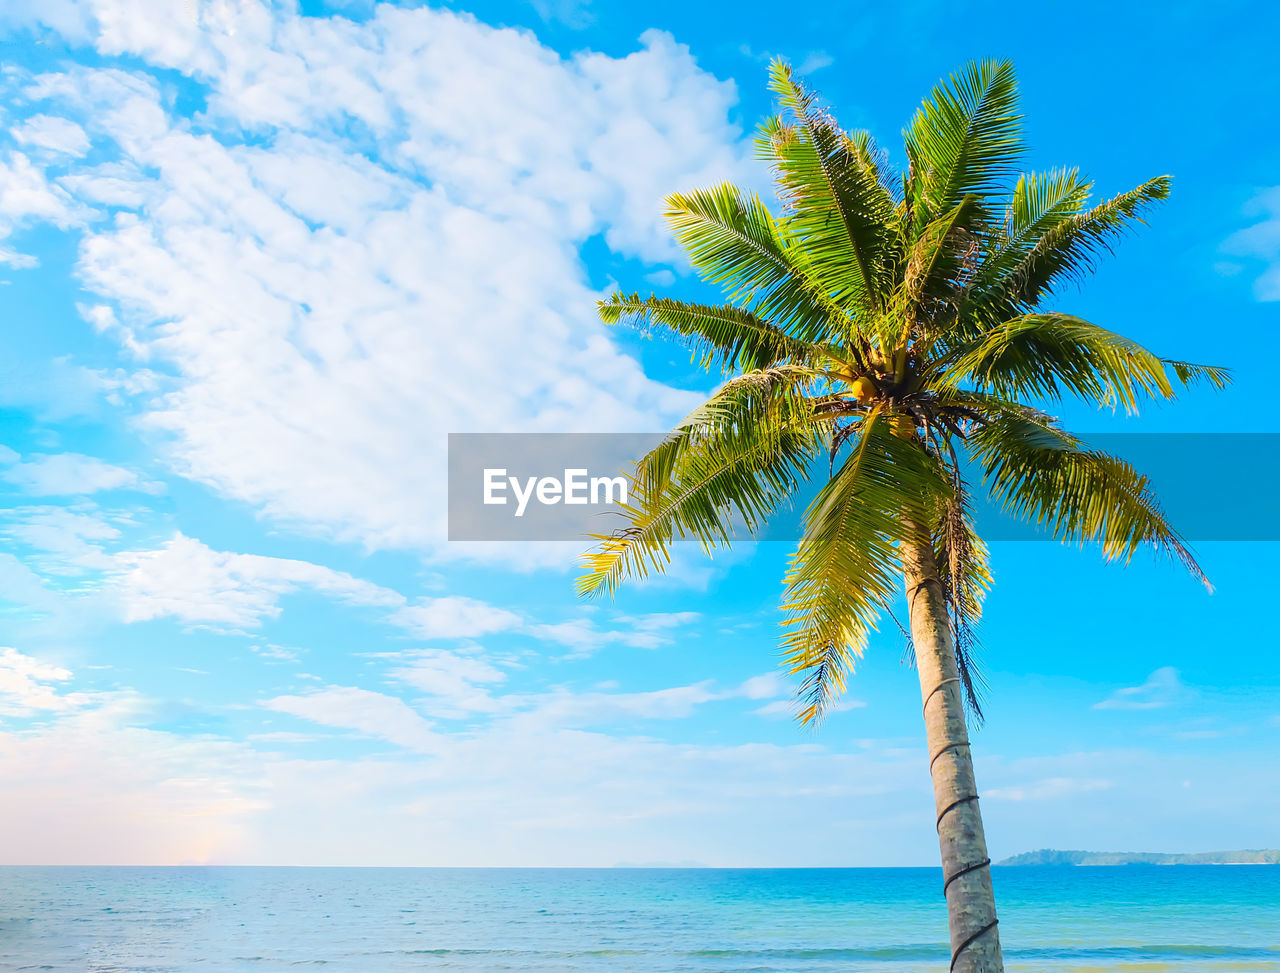 sky, palm tree, tropical climate, water, sea, tree, beauty in nature, horizon over water, cloud - sky, tranquility, scenics - nature, horizon, nature, plant, tranquil scene, growth, coconut palm tree, beach, outdoors, no people, tropical tree, palm leaf, turquoise colored